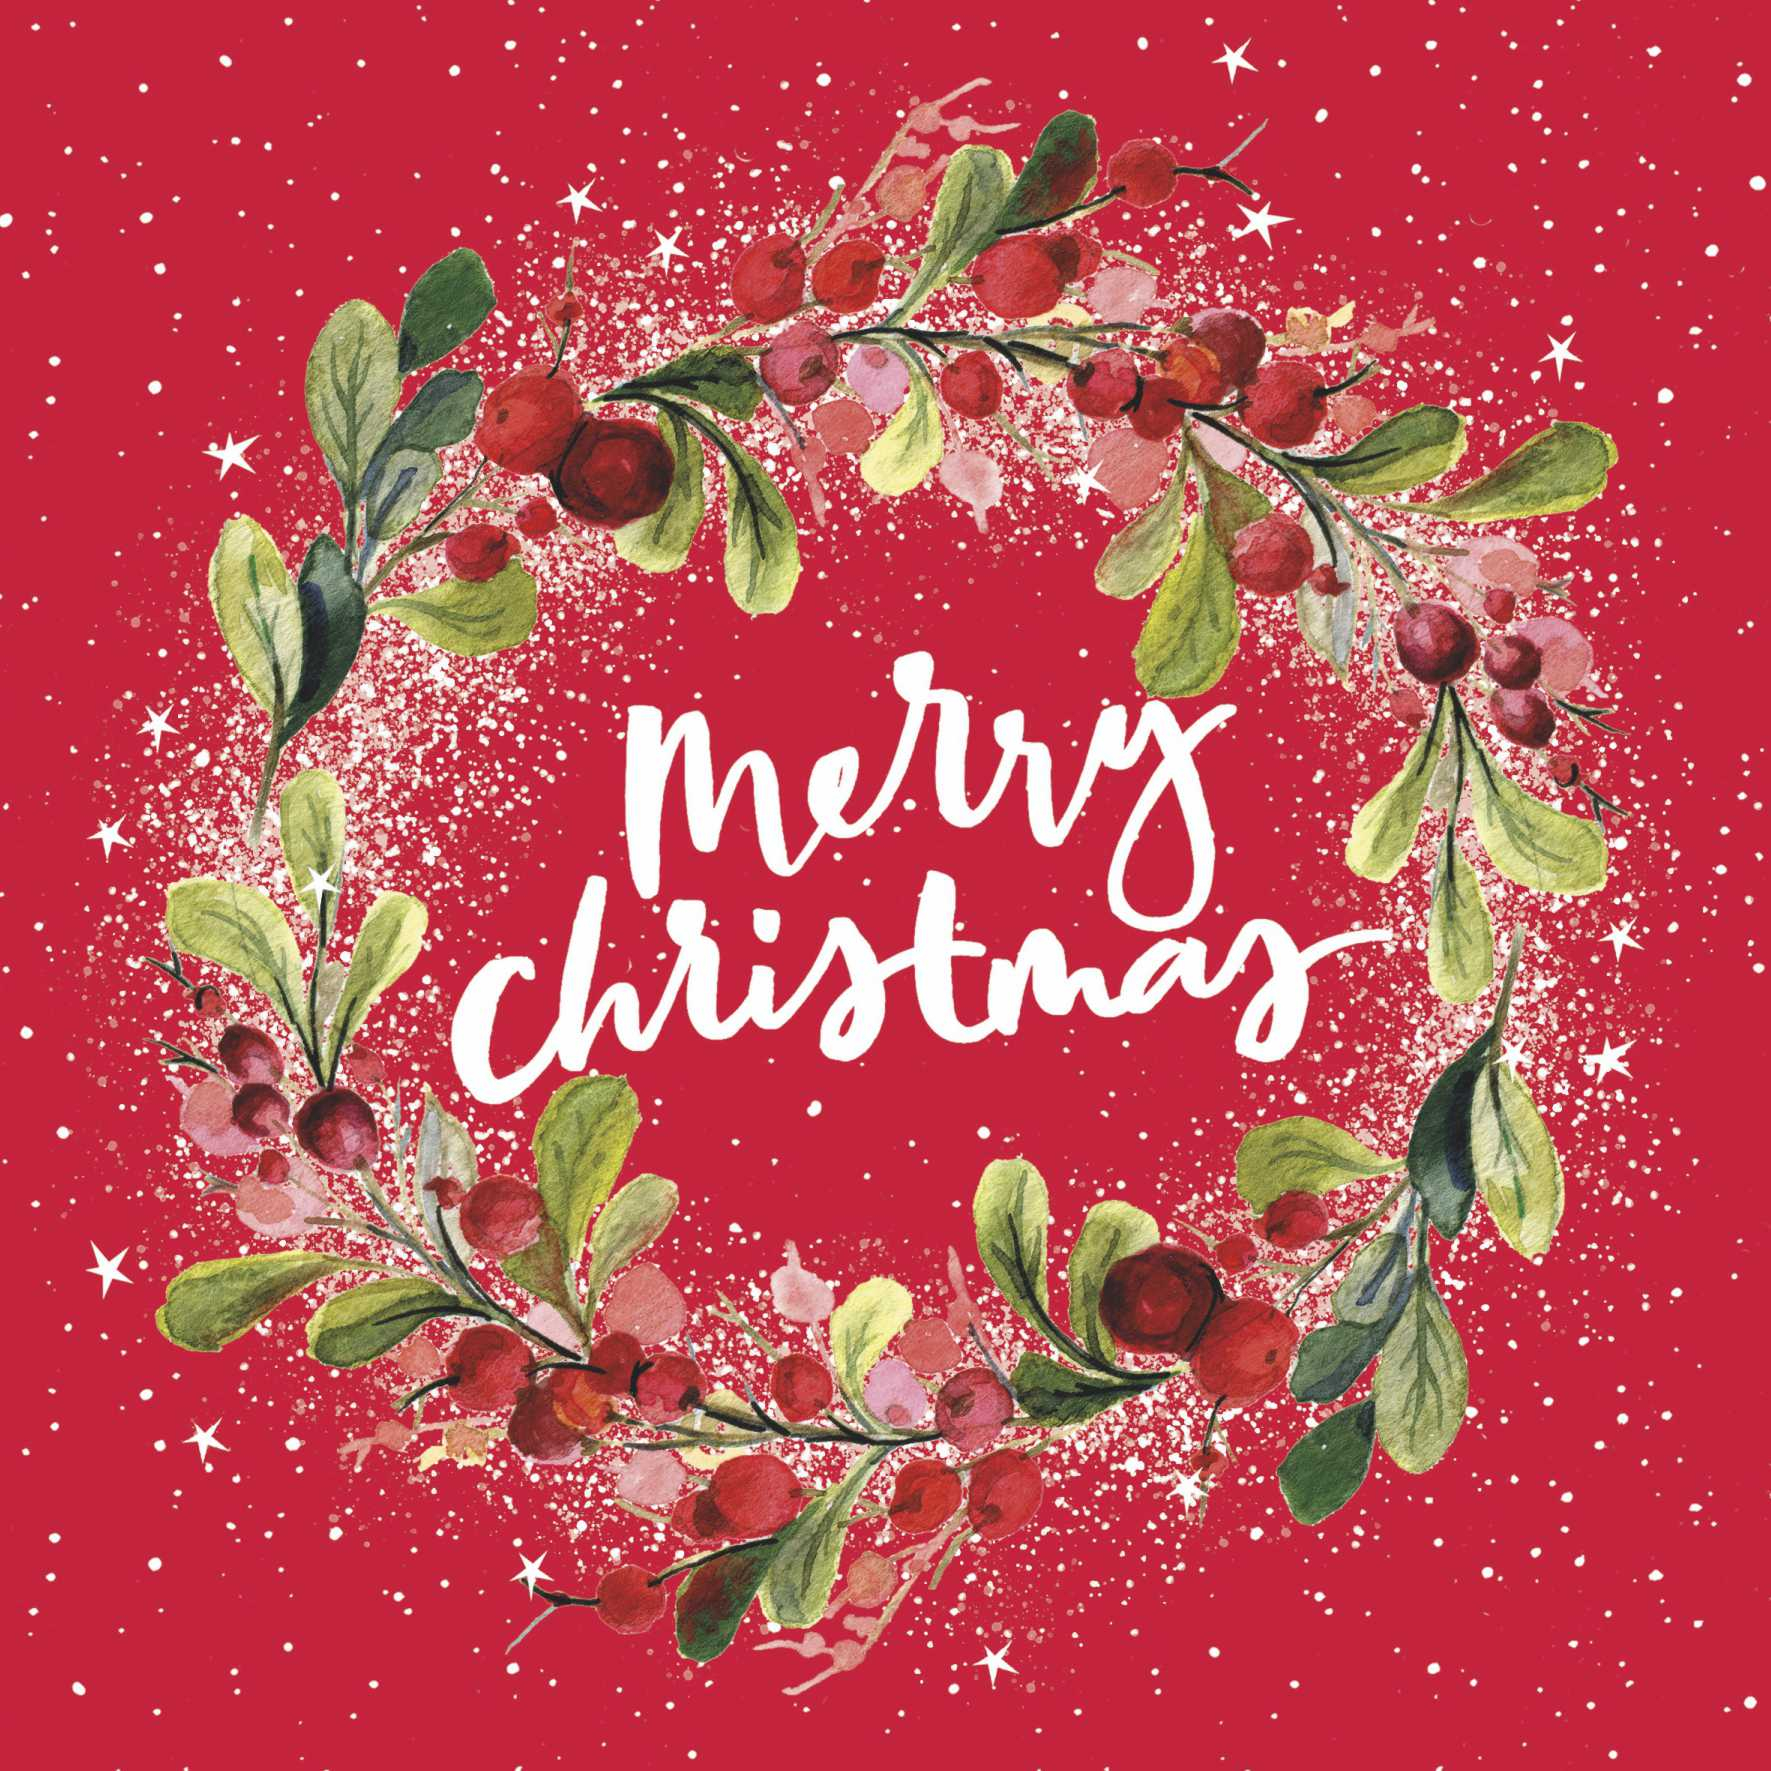 Red Wreath Christmas Cards (Pack of 10)